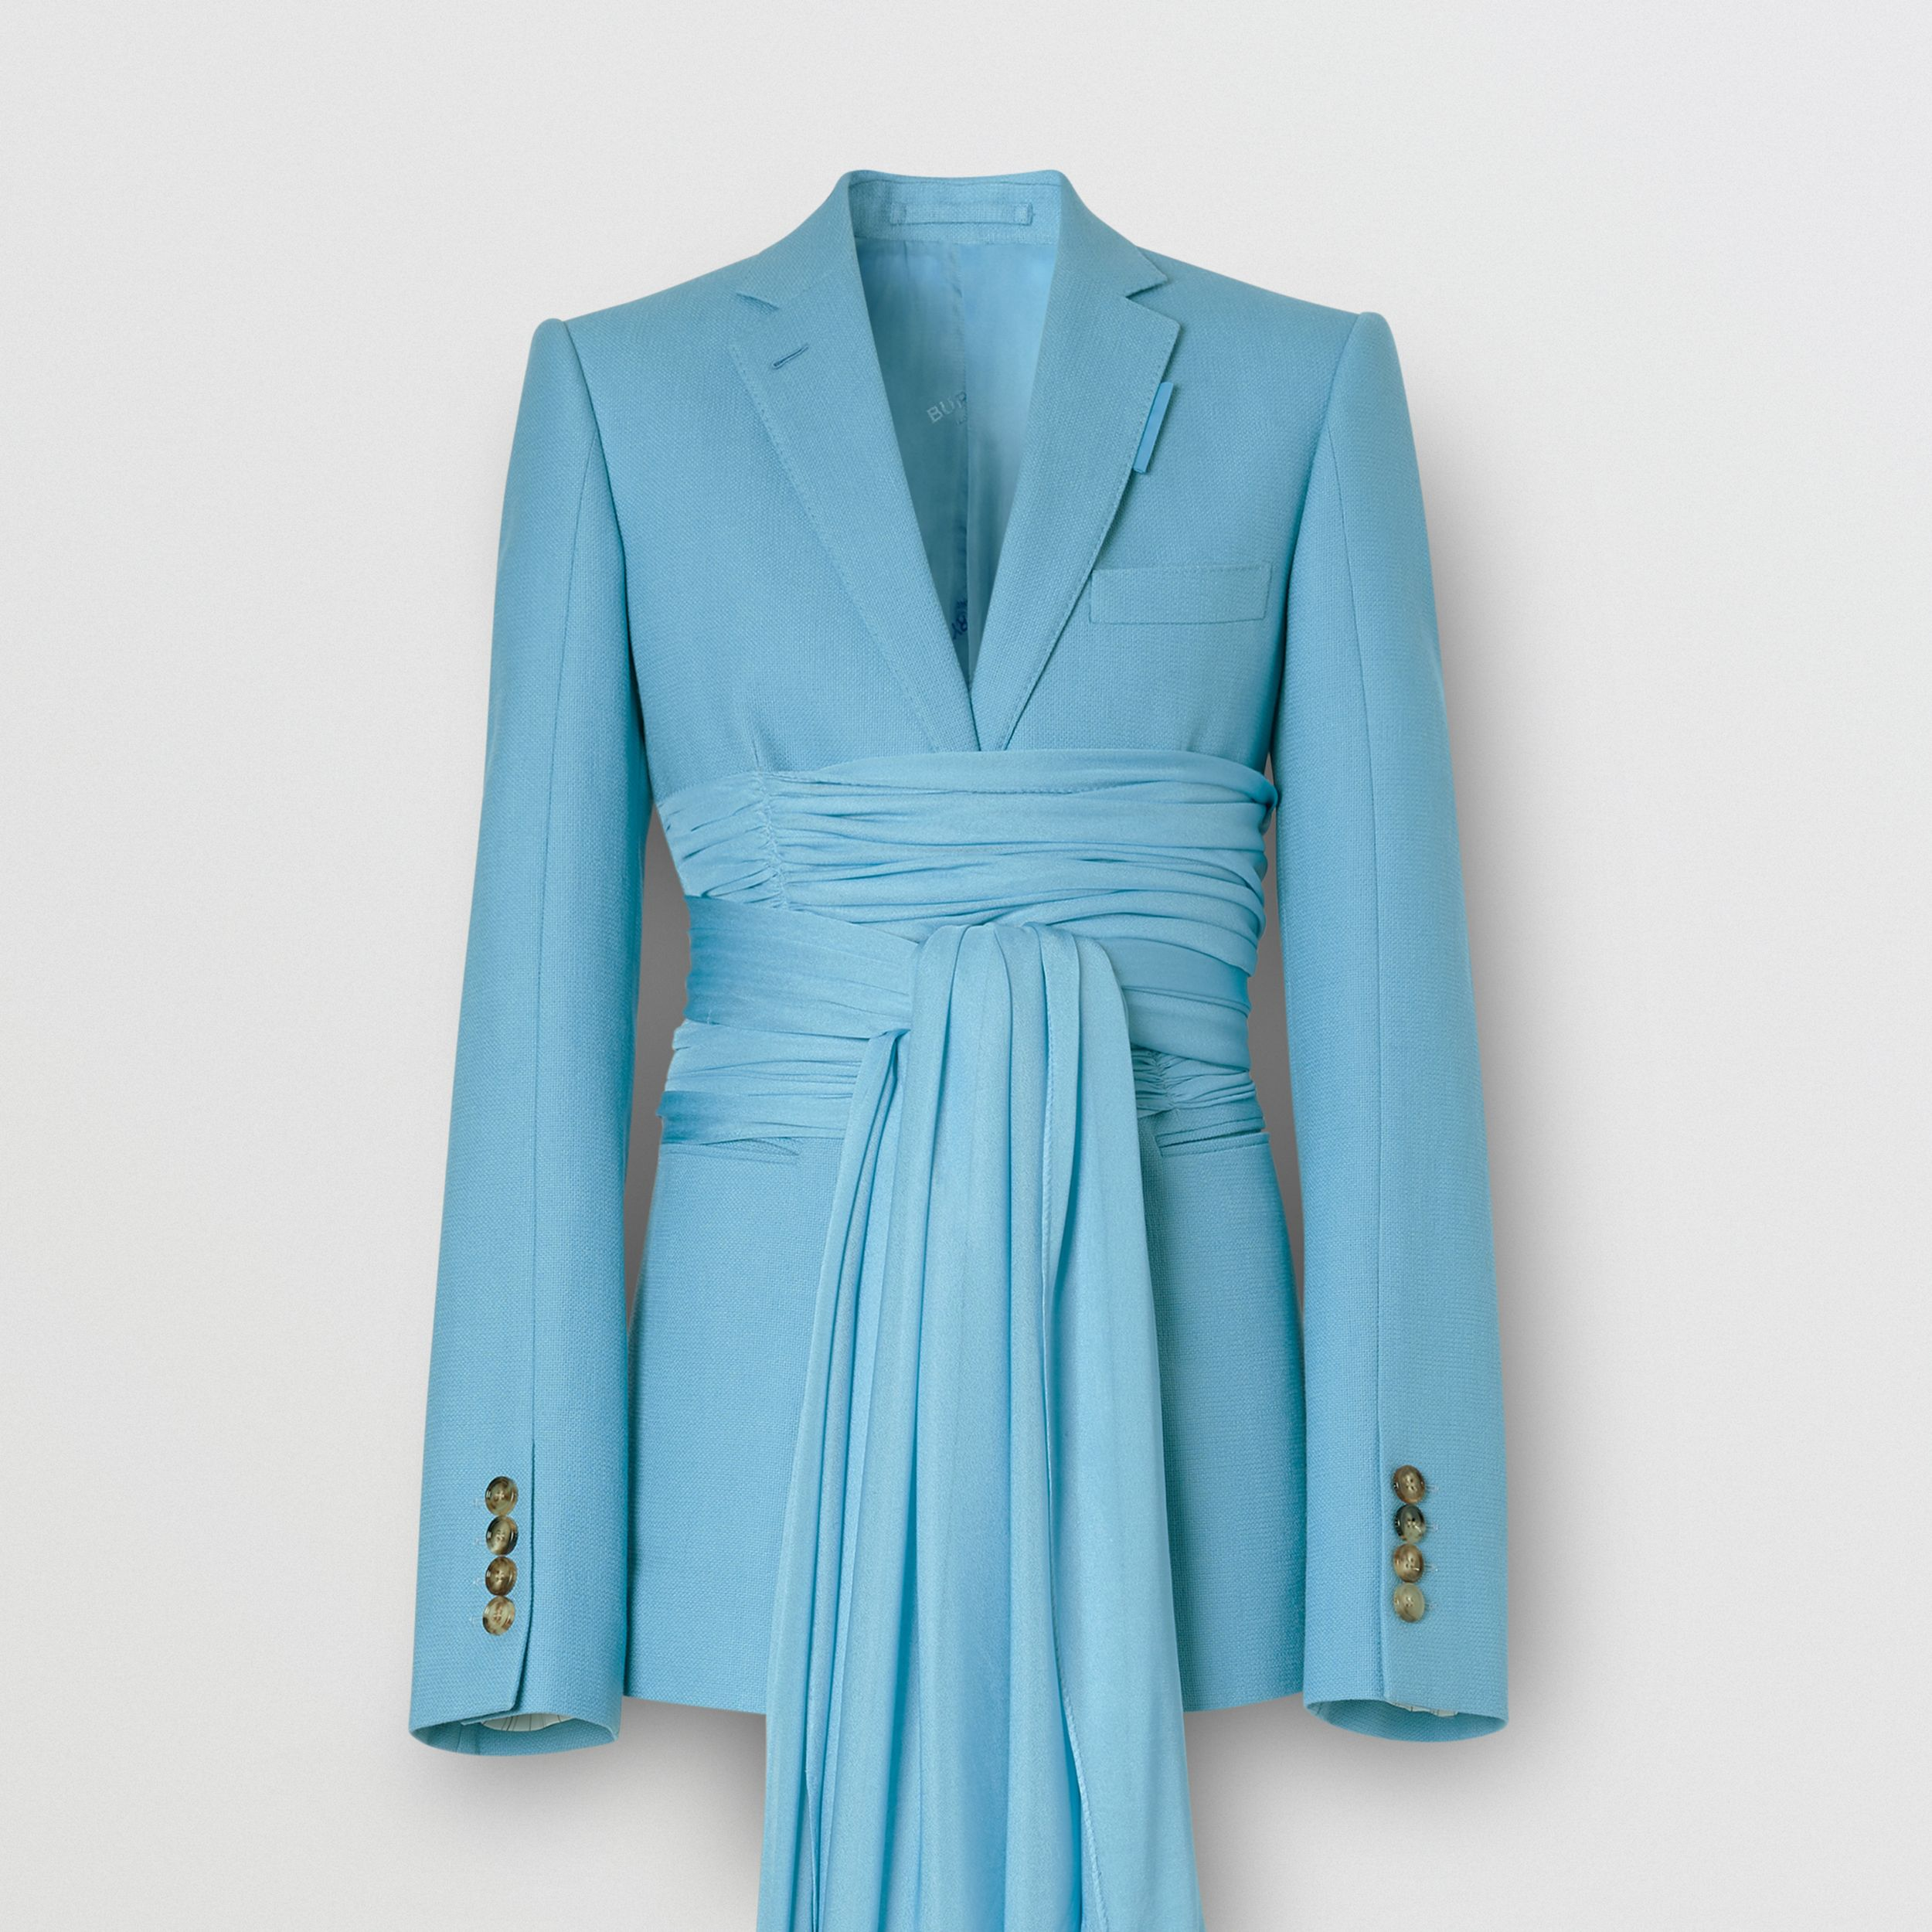 Jersey Sash Detail Wool Ramie Tailored Jacket in Blue Topaz - Women | Burberry - 4